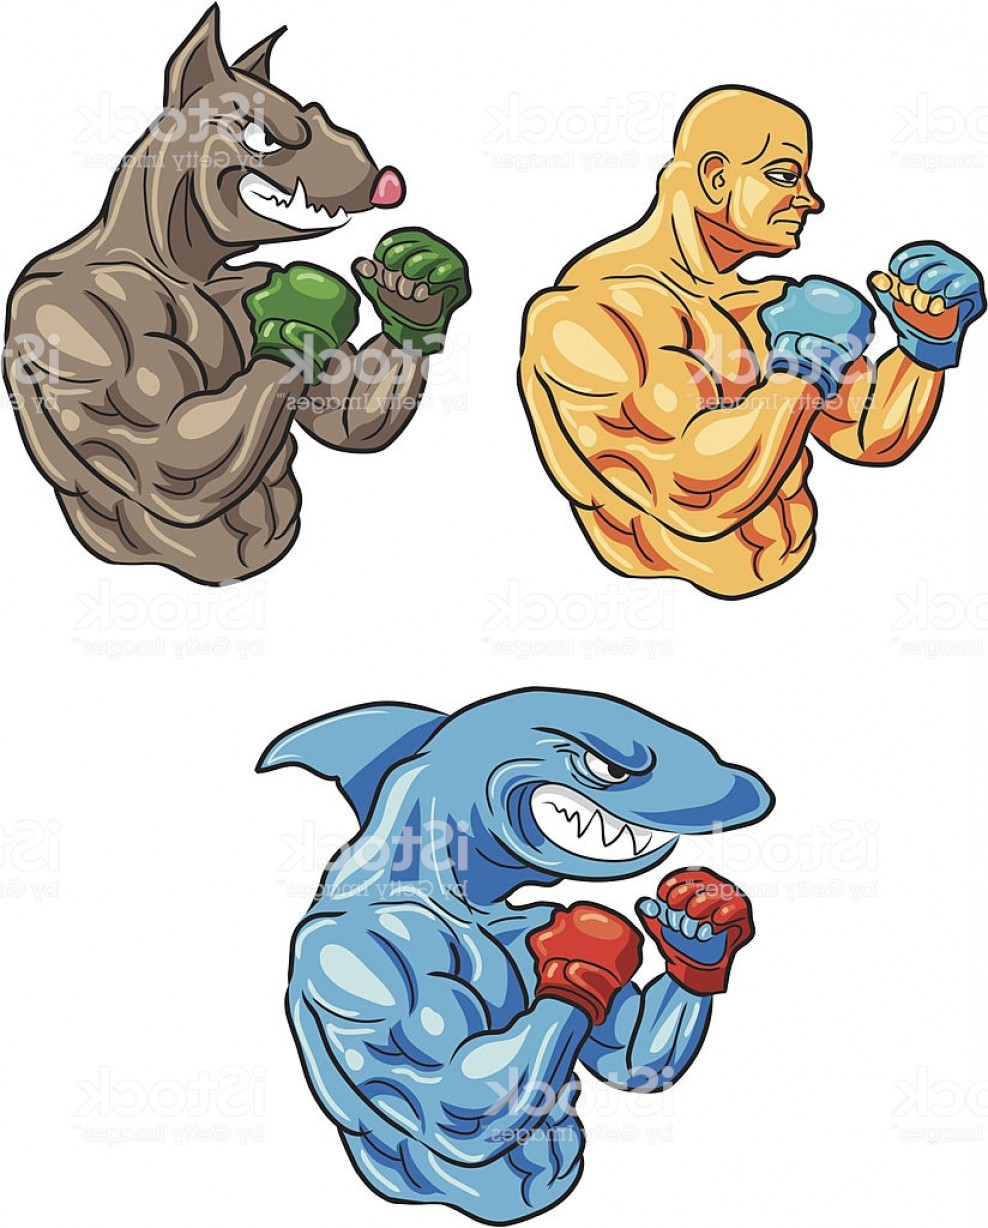 Bull Shark Jaws Vector Art: Mma Fighters Pit Bull Shark Human Gm